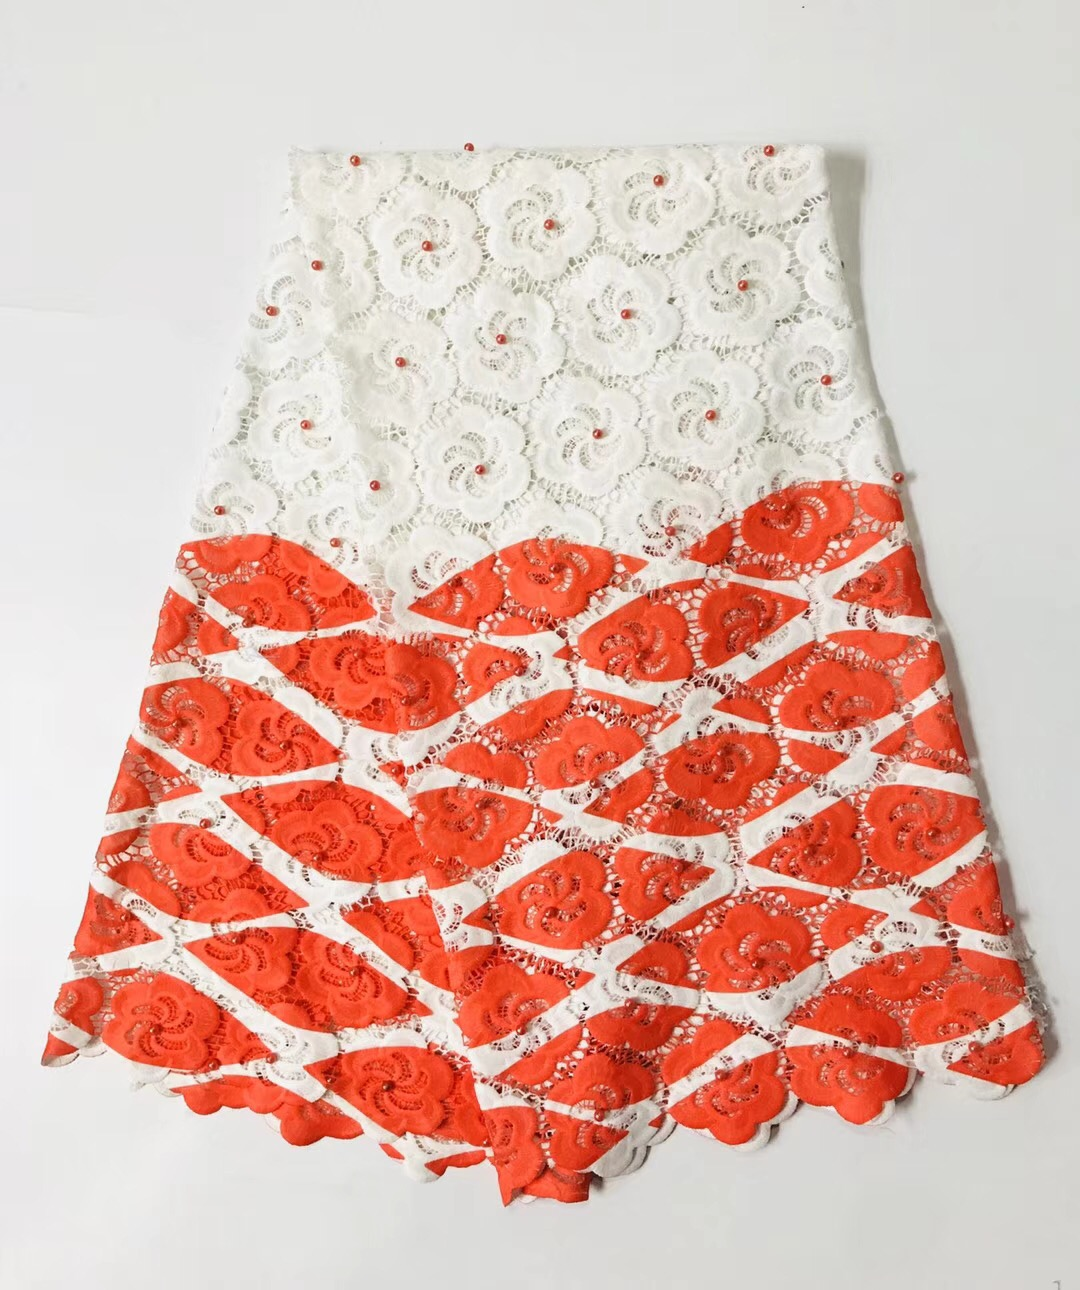 Orange African Lace Fabric High Quality Guipure Lace Embroidery Bridal Beaded Trim For Nigerian Dress R20892 Latest Fashion Home & Garden